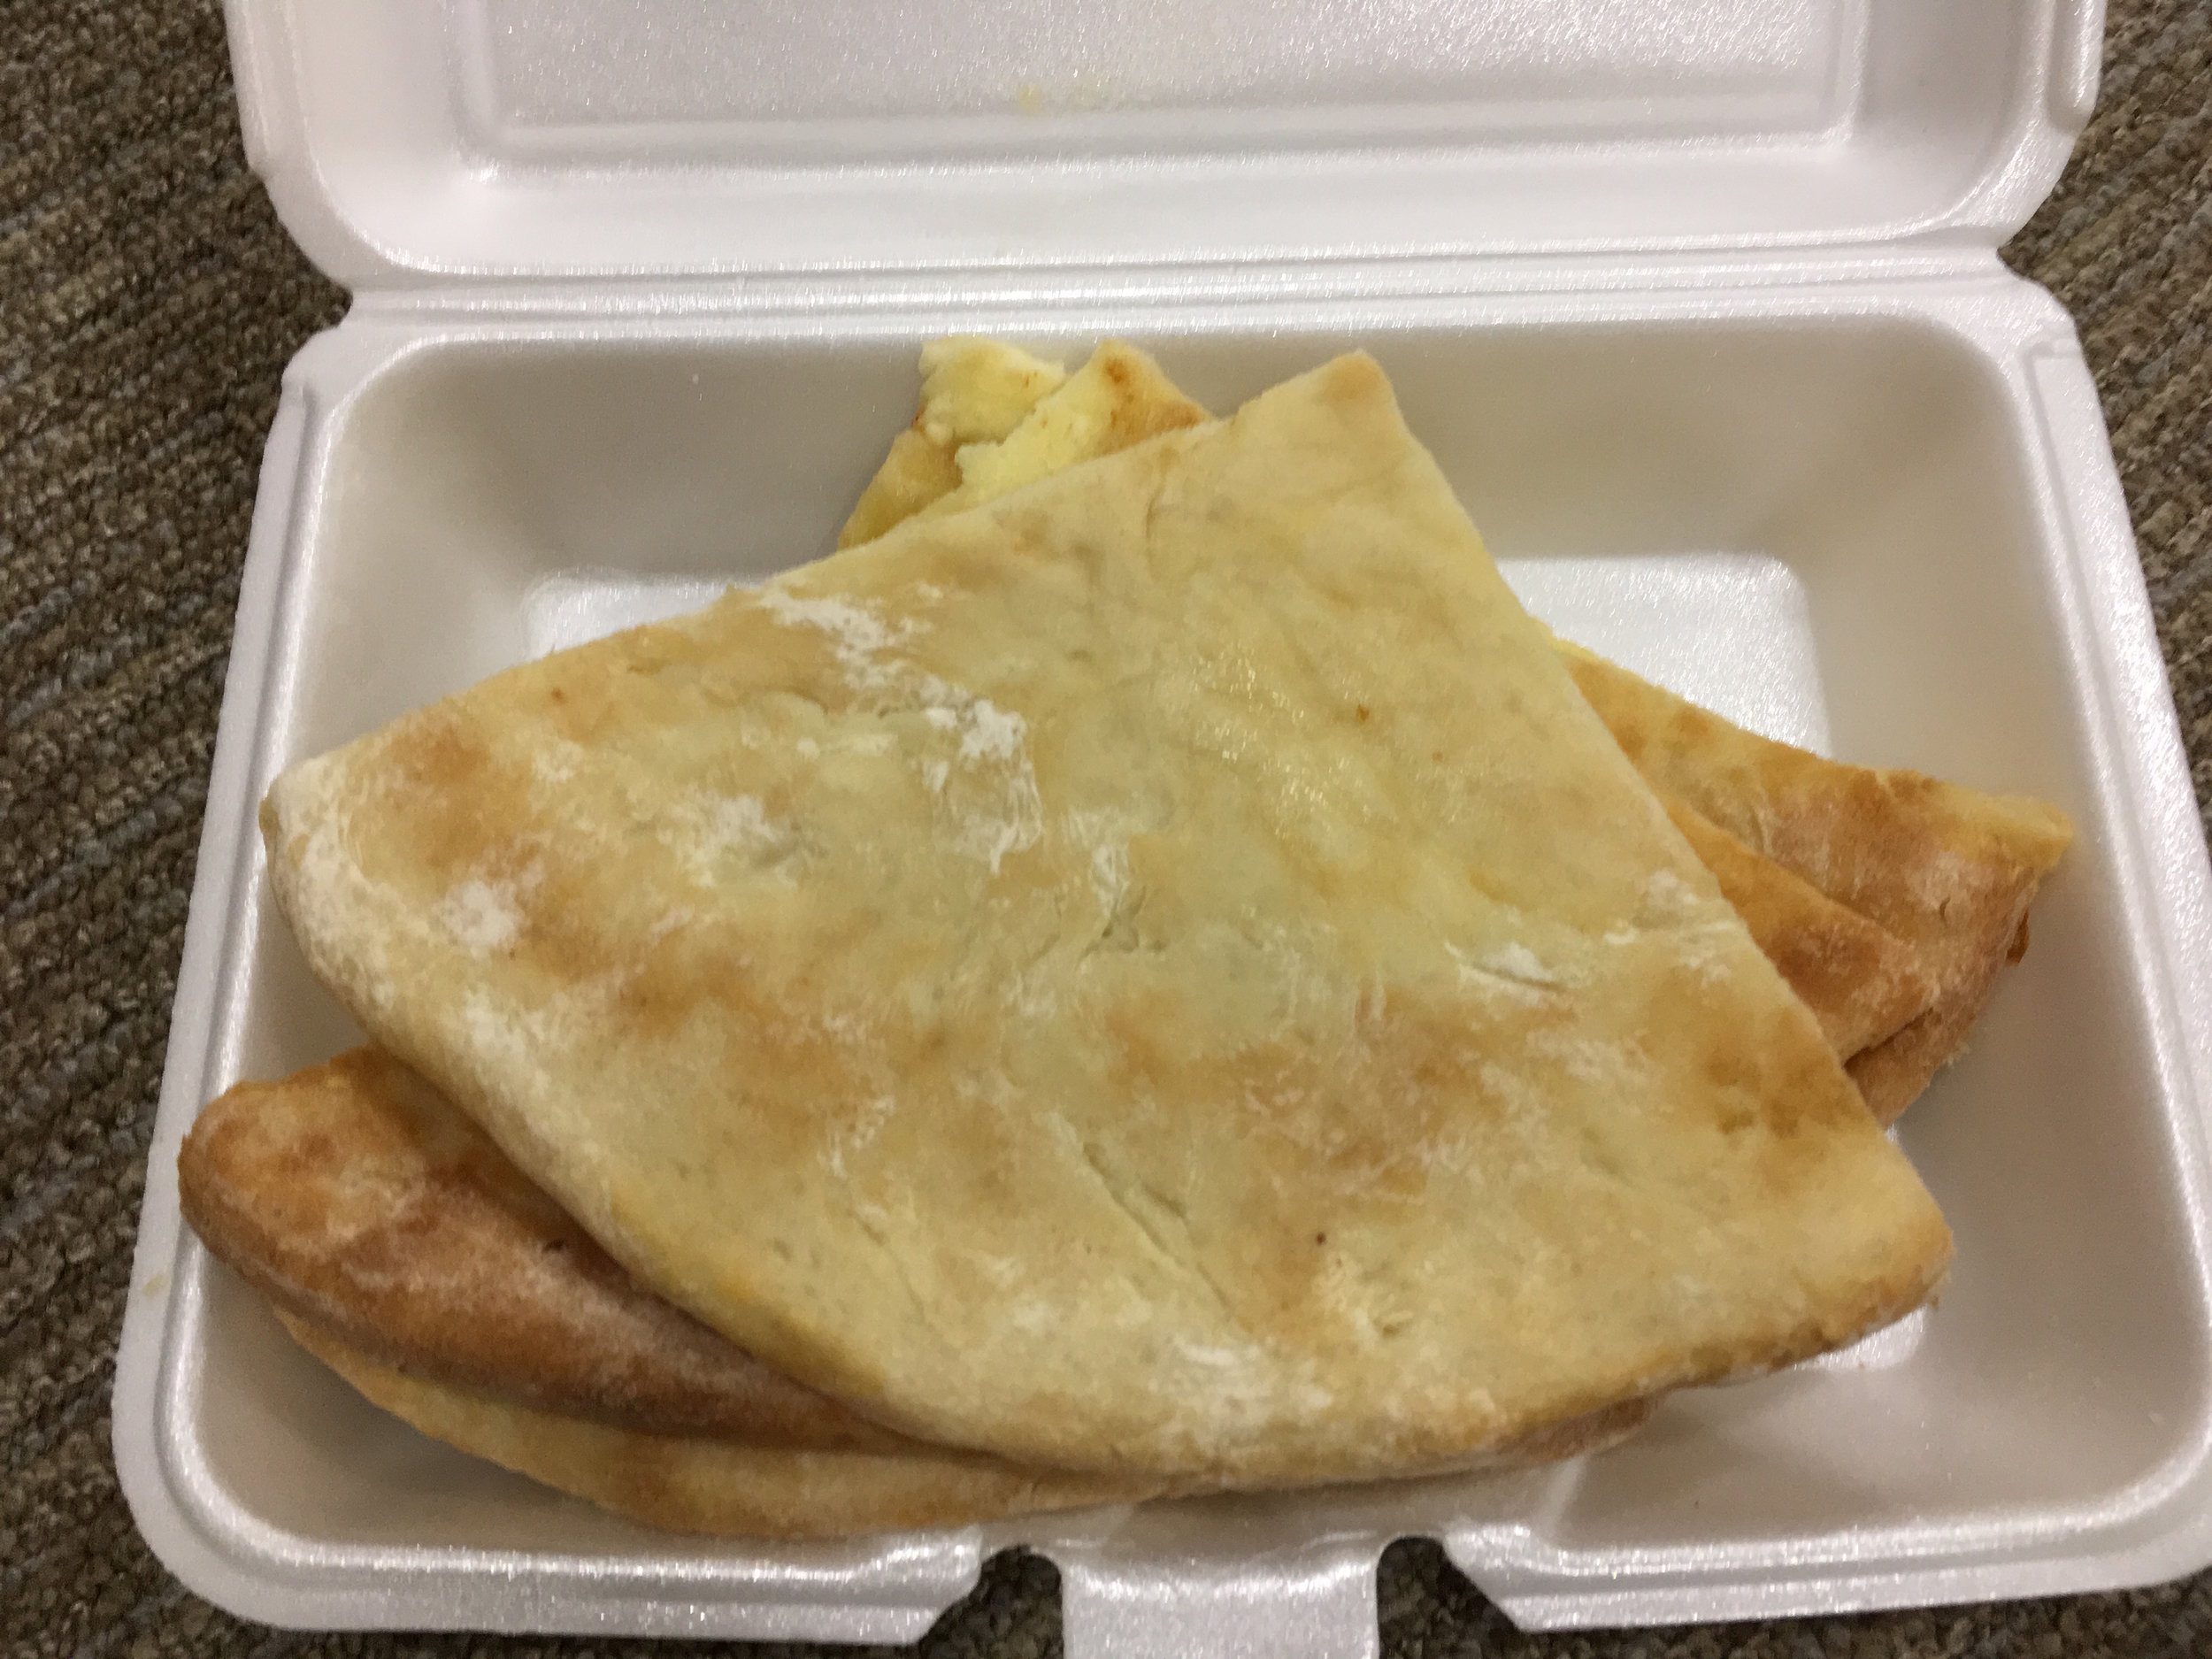 khachapuri to go (eaten in clinic!)